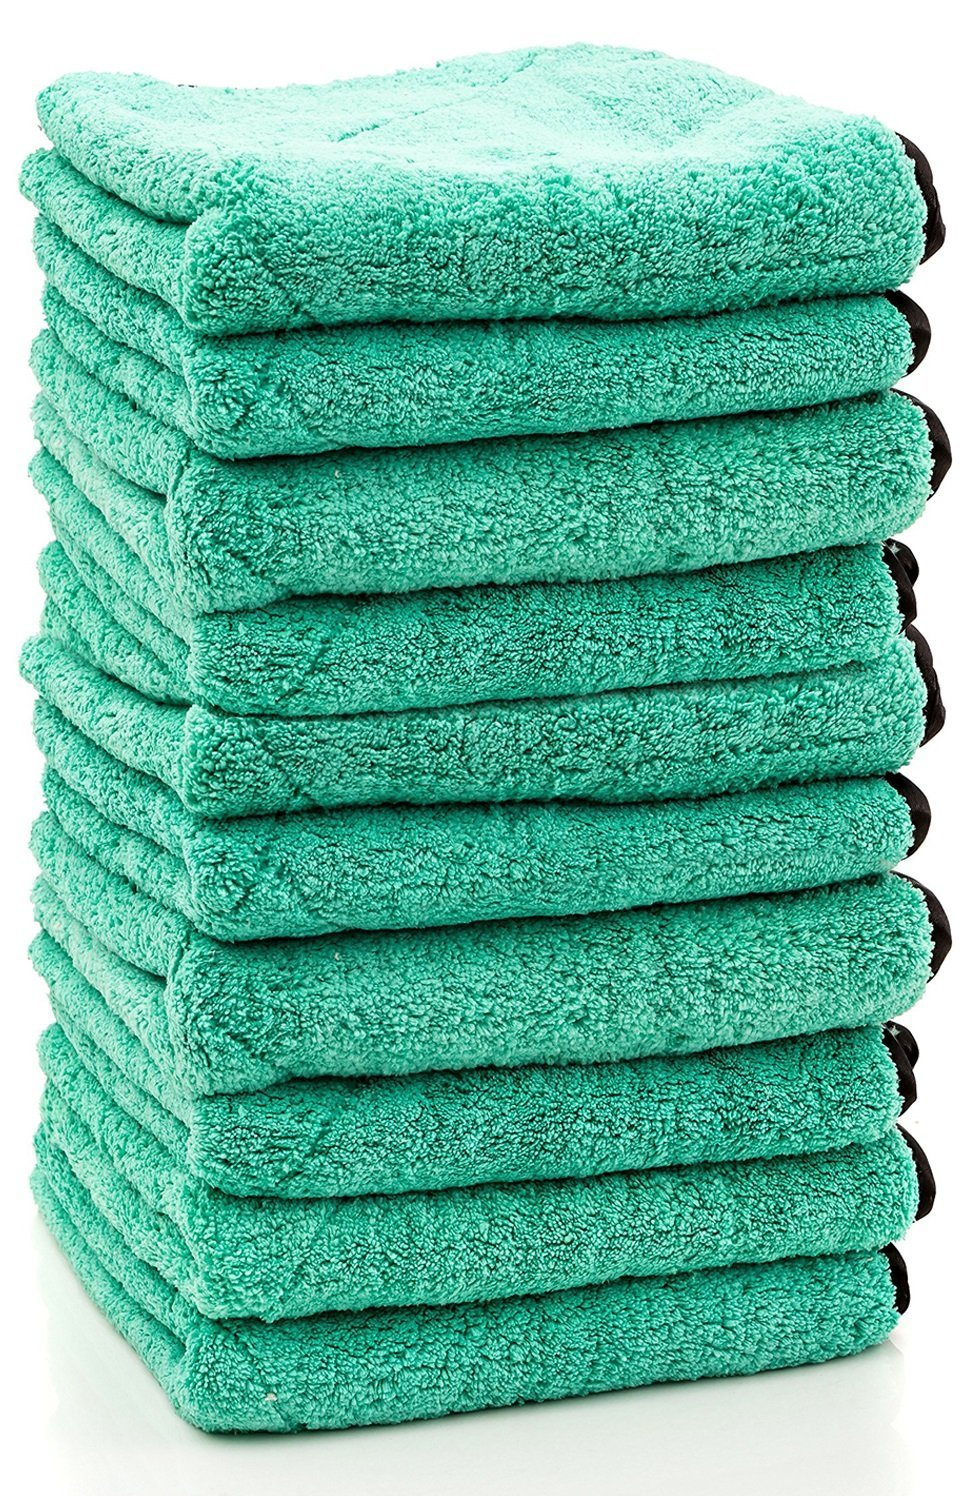 10 Pack - Ultra Plush Velvet Microfiber Towels LARGE 14'' x 14'' Size - Ultra Thick 700 GSM - Polishing, Detailing, Cleaning Towel for Fine Automobile Finishes, Car Windows, Glass & More!